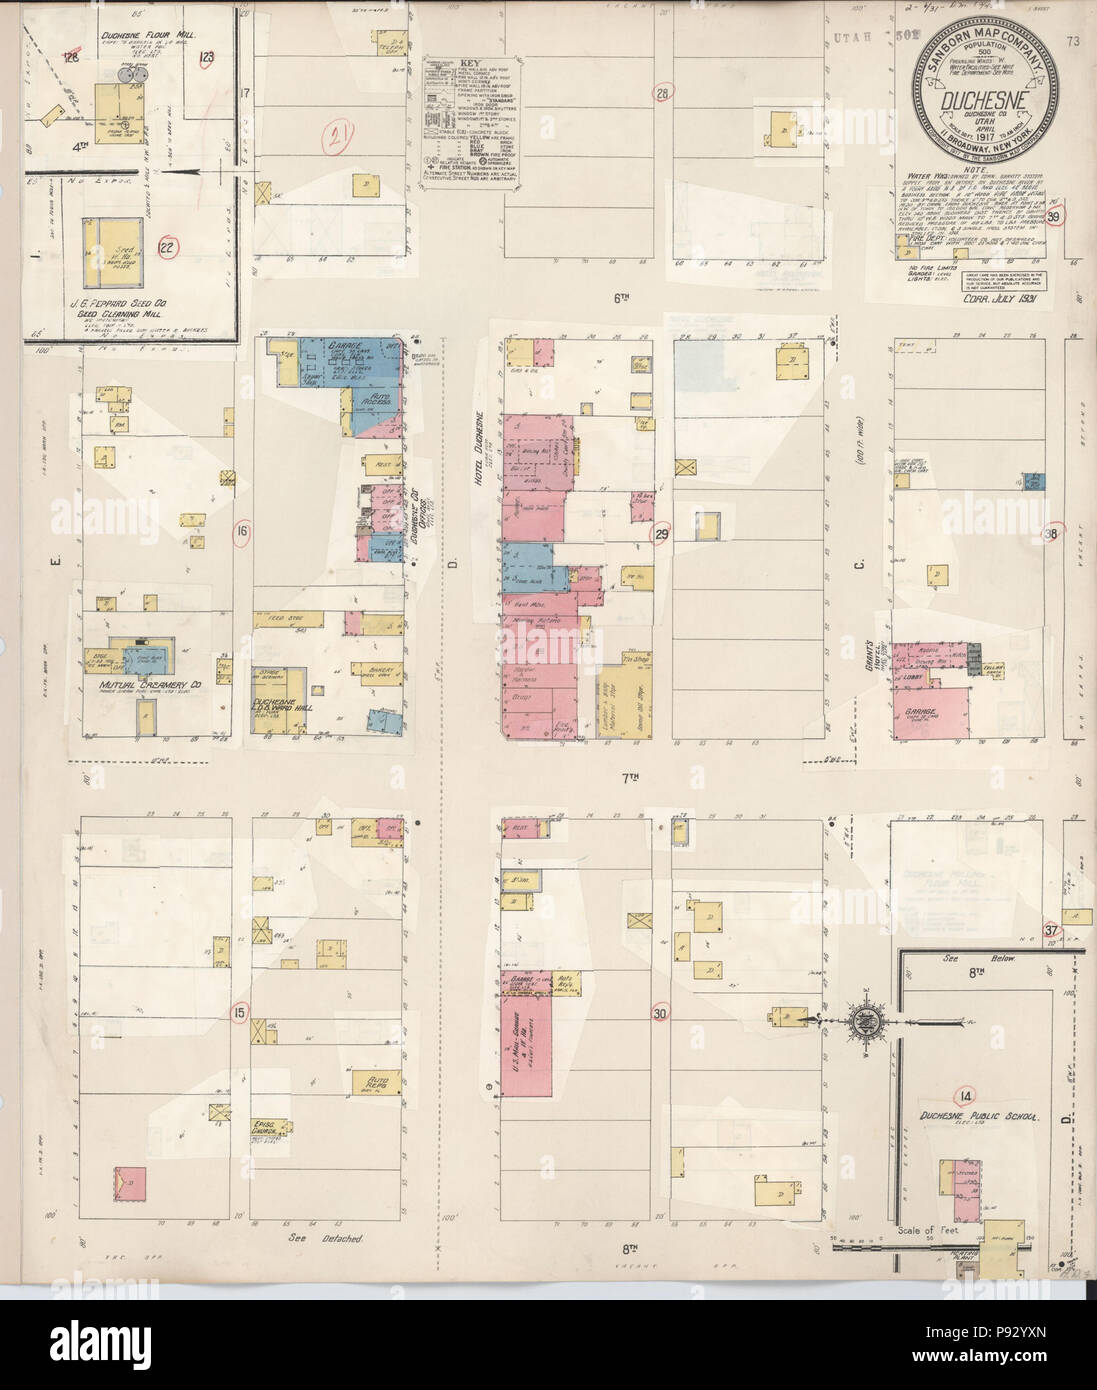 County Utah Map.497 Sanborn Fire Insurance Map From Duchesne Duchesne County Utah